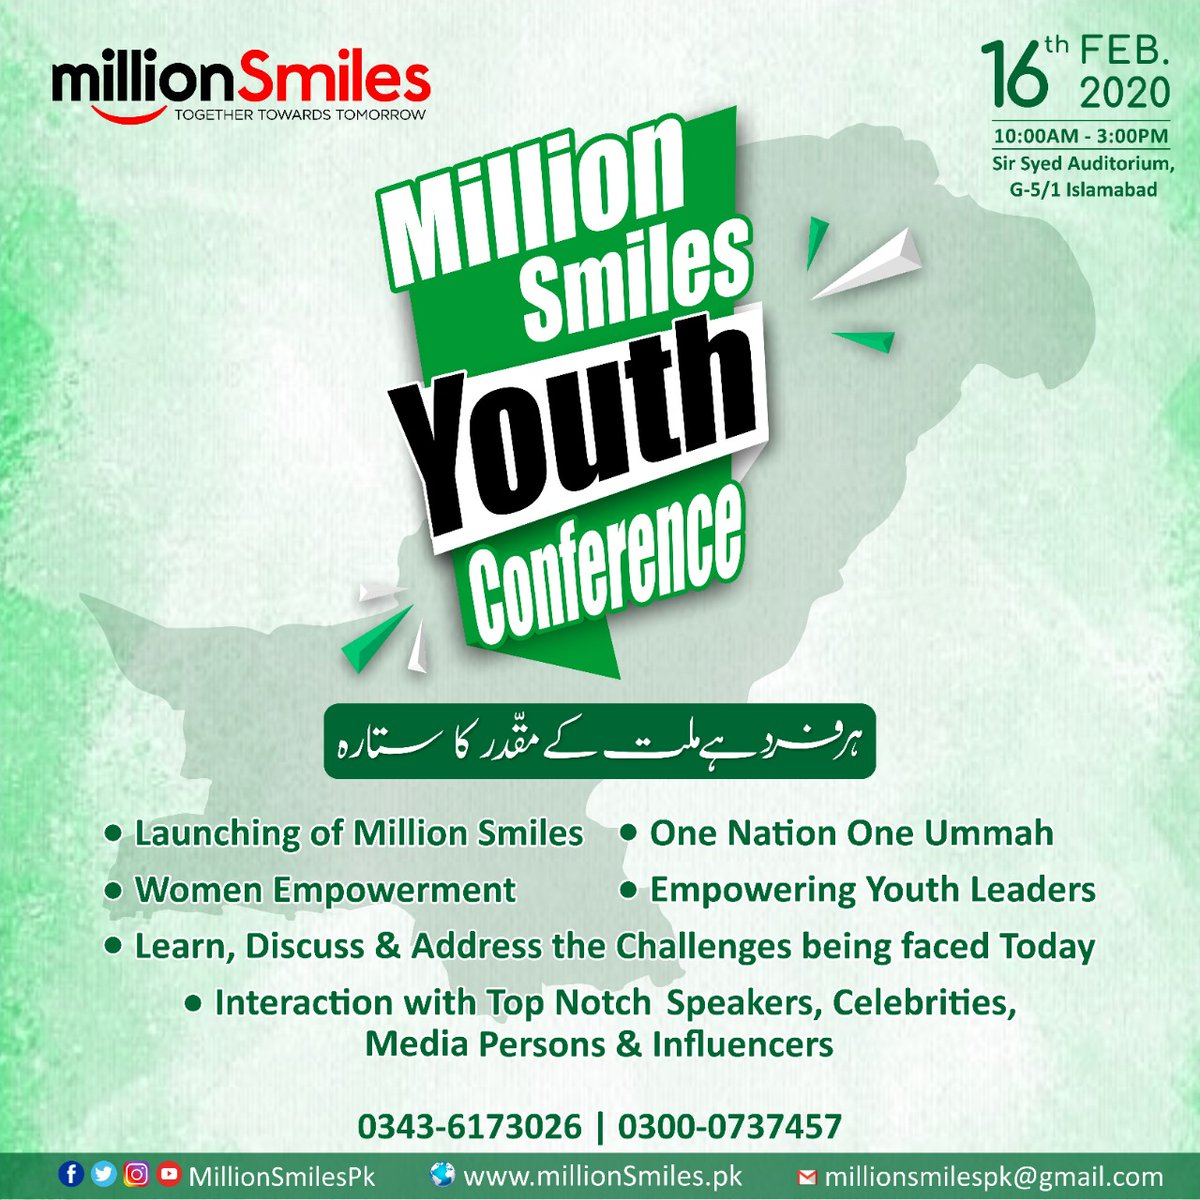 Pakistan's Biggest Revolutionary Youth Initiative @MillionSmilesPK presents its first MEGA EVENT_Million Smiles Youth Conference_ Are you Ready?  Come Join Us! #MSYCByMillionSmiles<br>http://pic.twitter.com/frc0lAZfhh